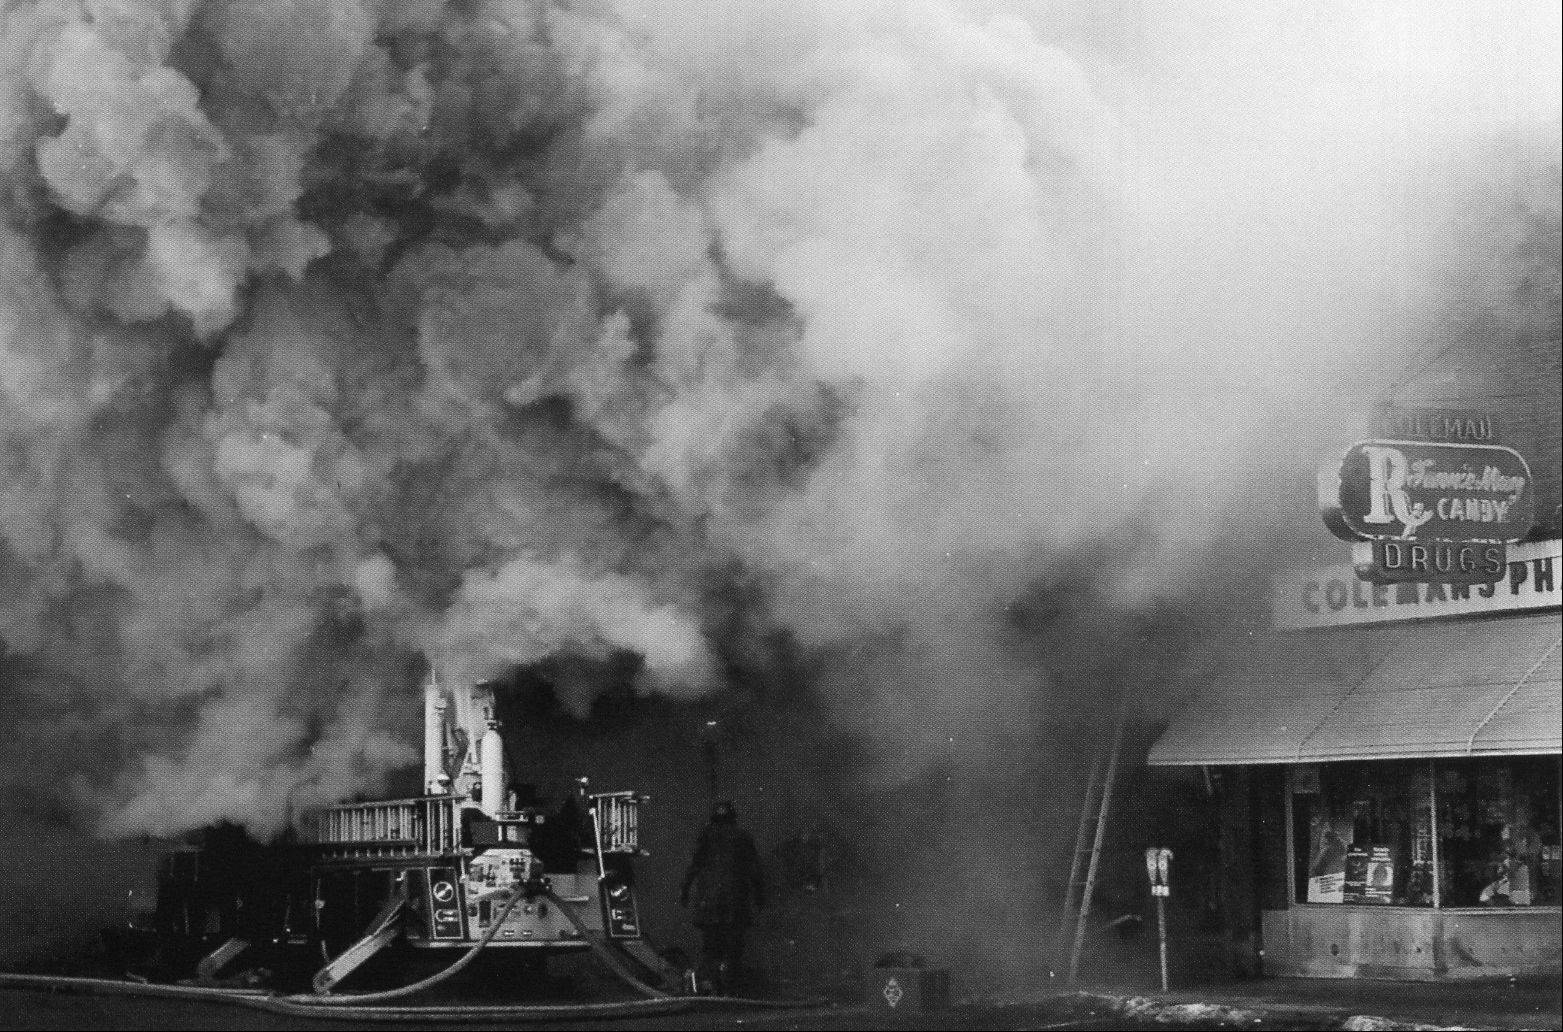 Palatine firefighters at the scene of the Ben Franklin store fire in Palatine on February 23, 1973. That fire killed three Palatine firefighters.